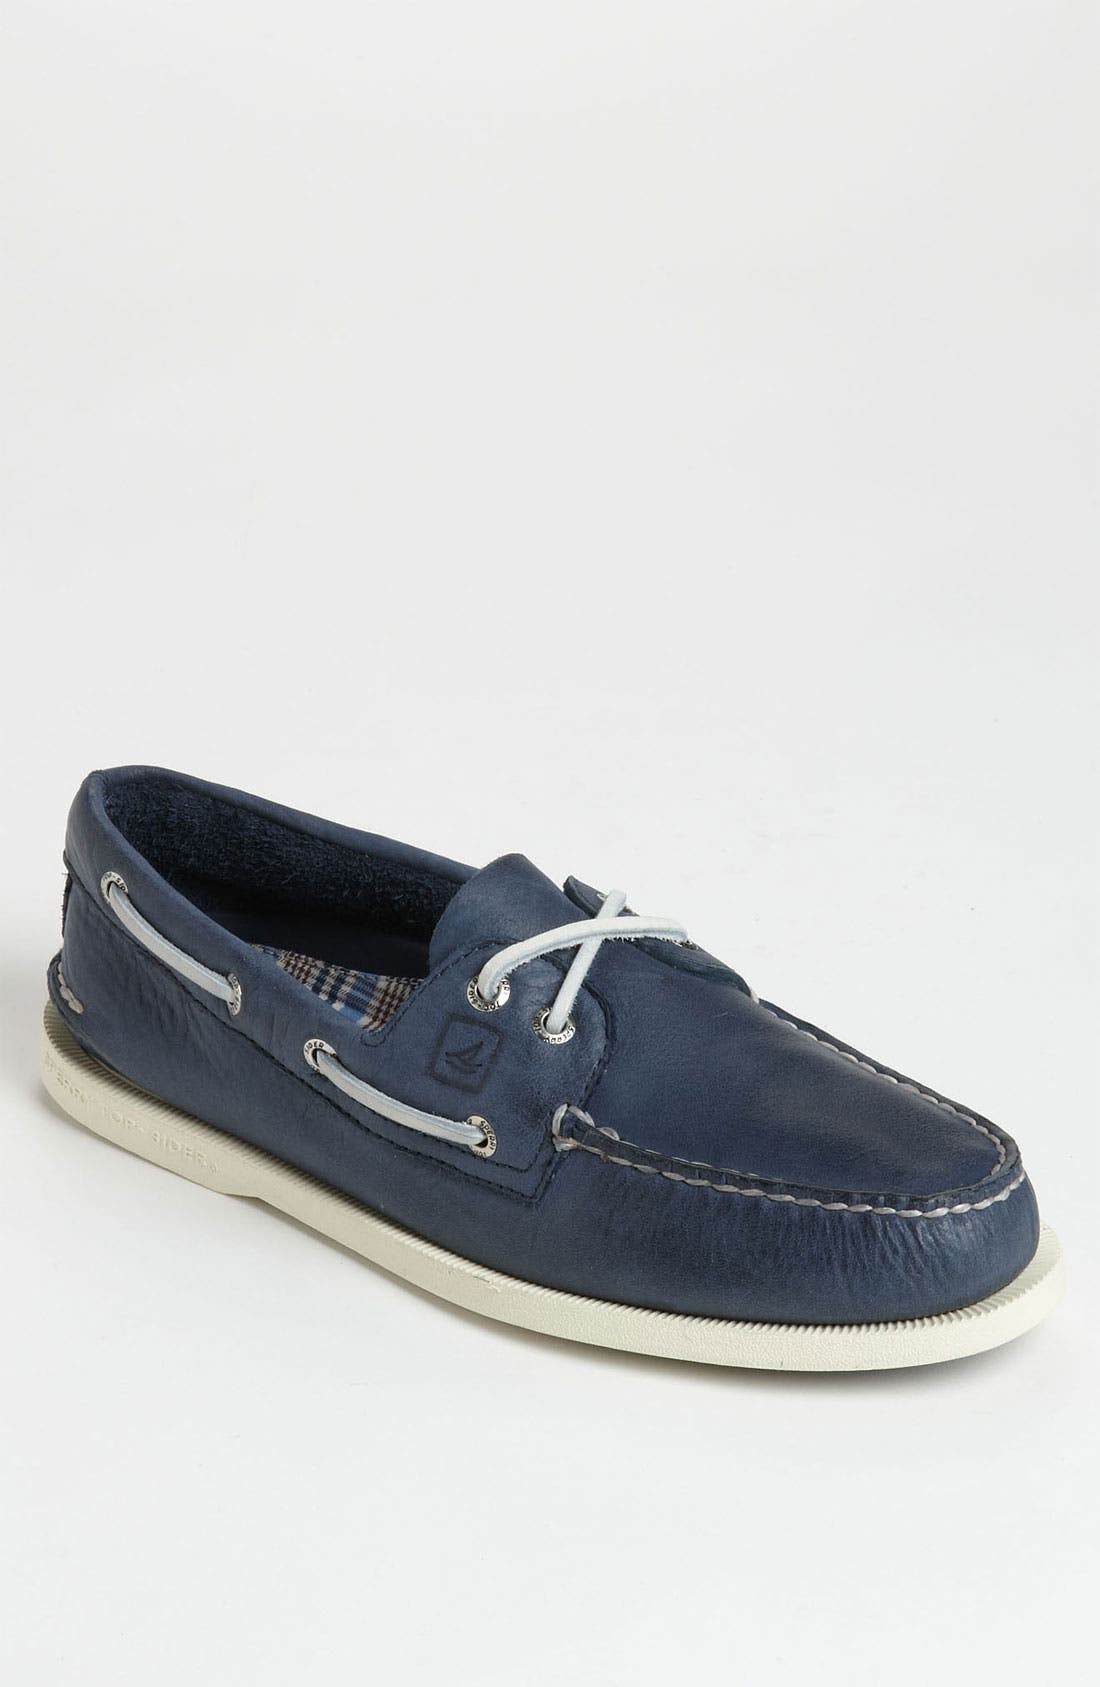 Alternate Image 1 Selected - Sperry 'Authentic Original' Burnished Boat Shoe